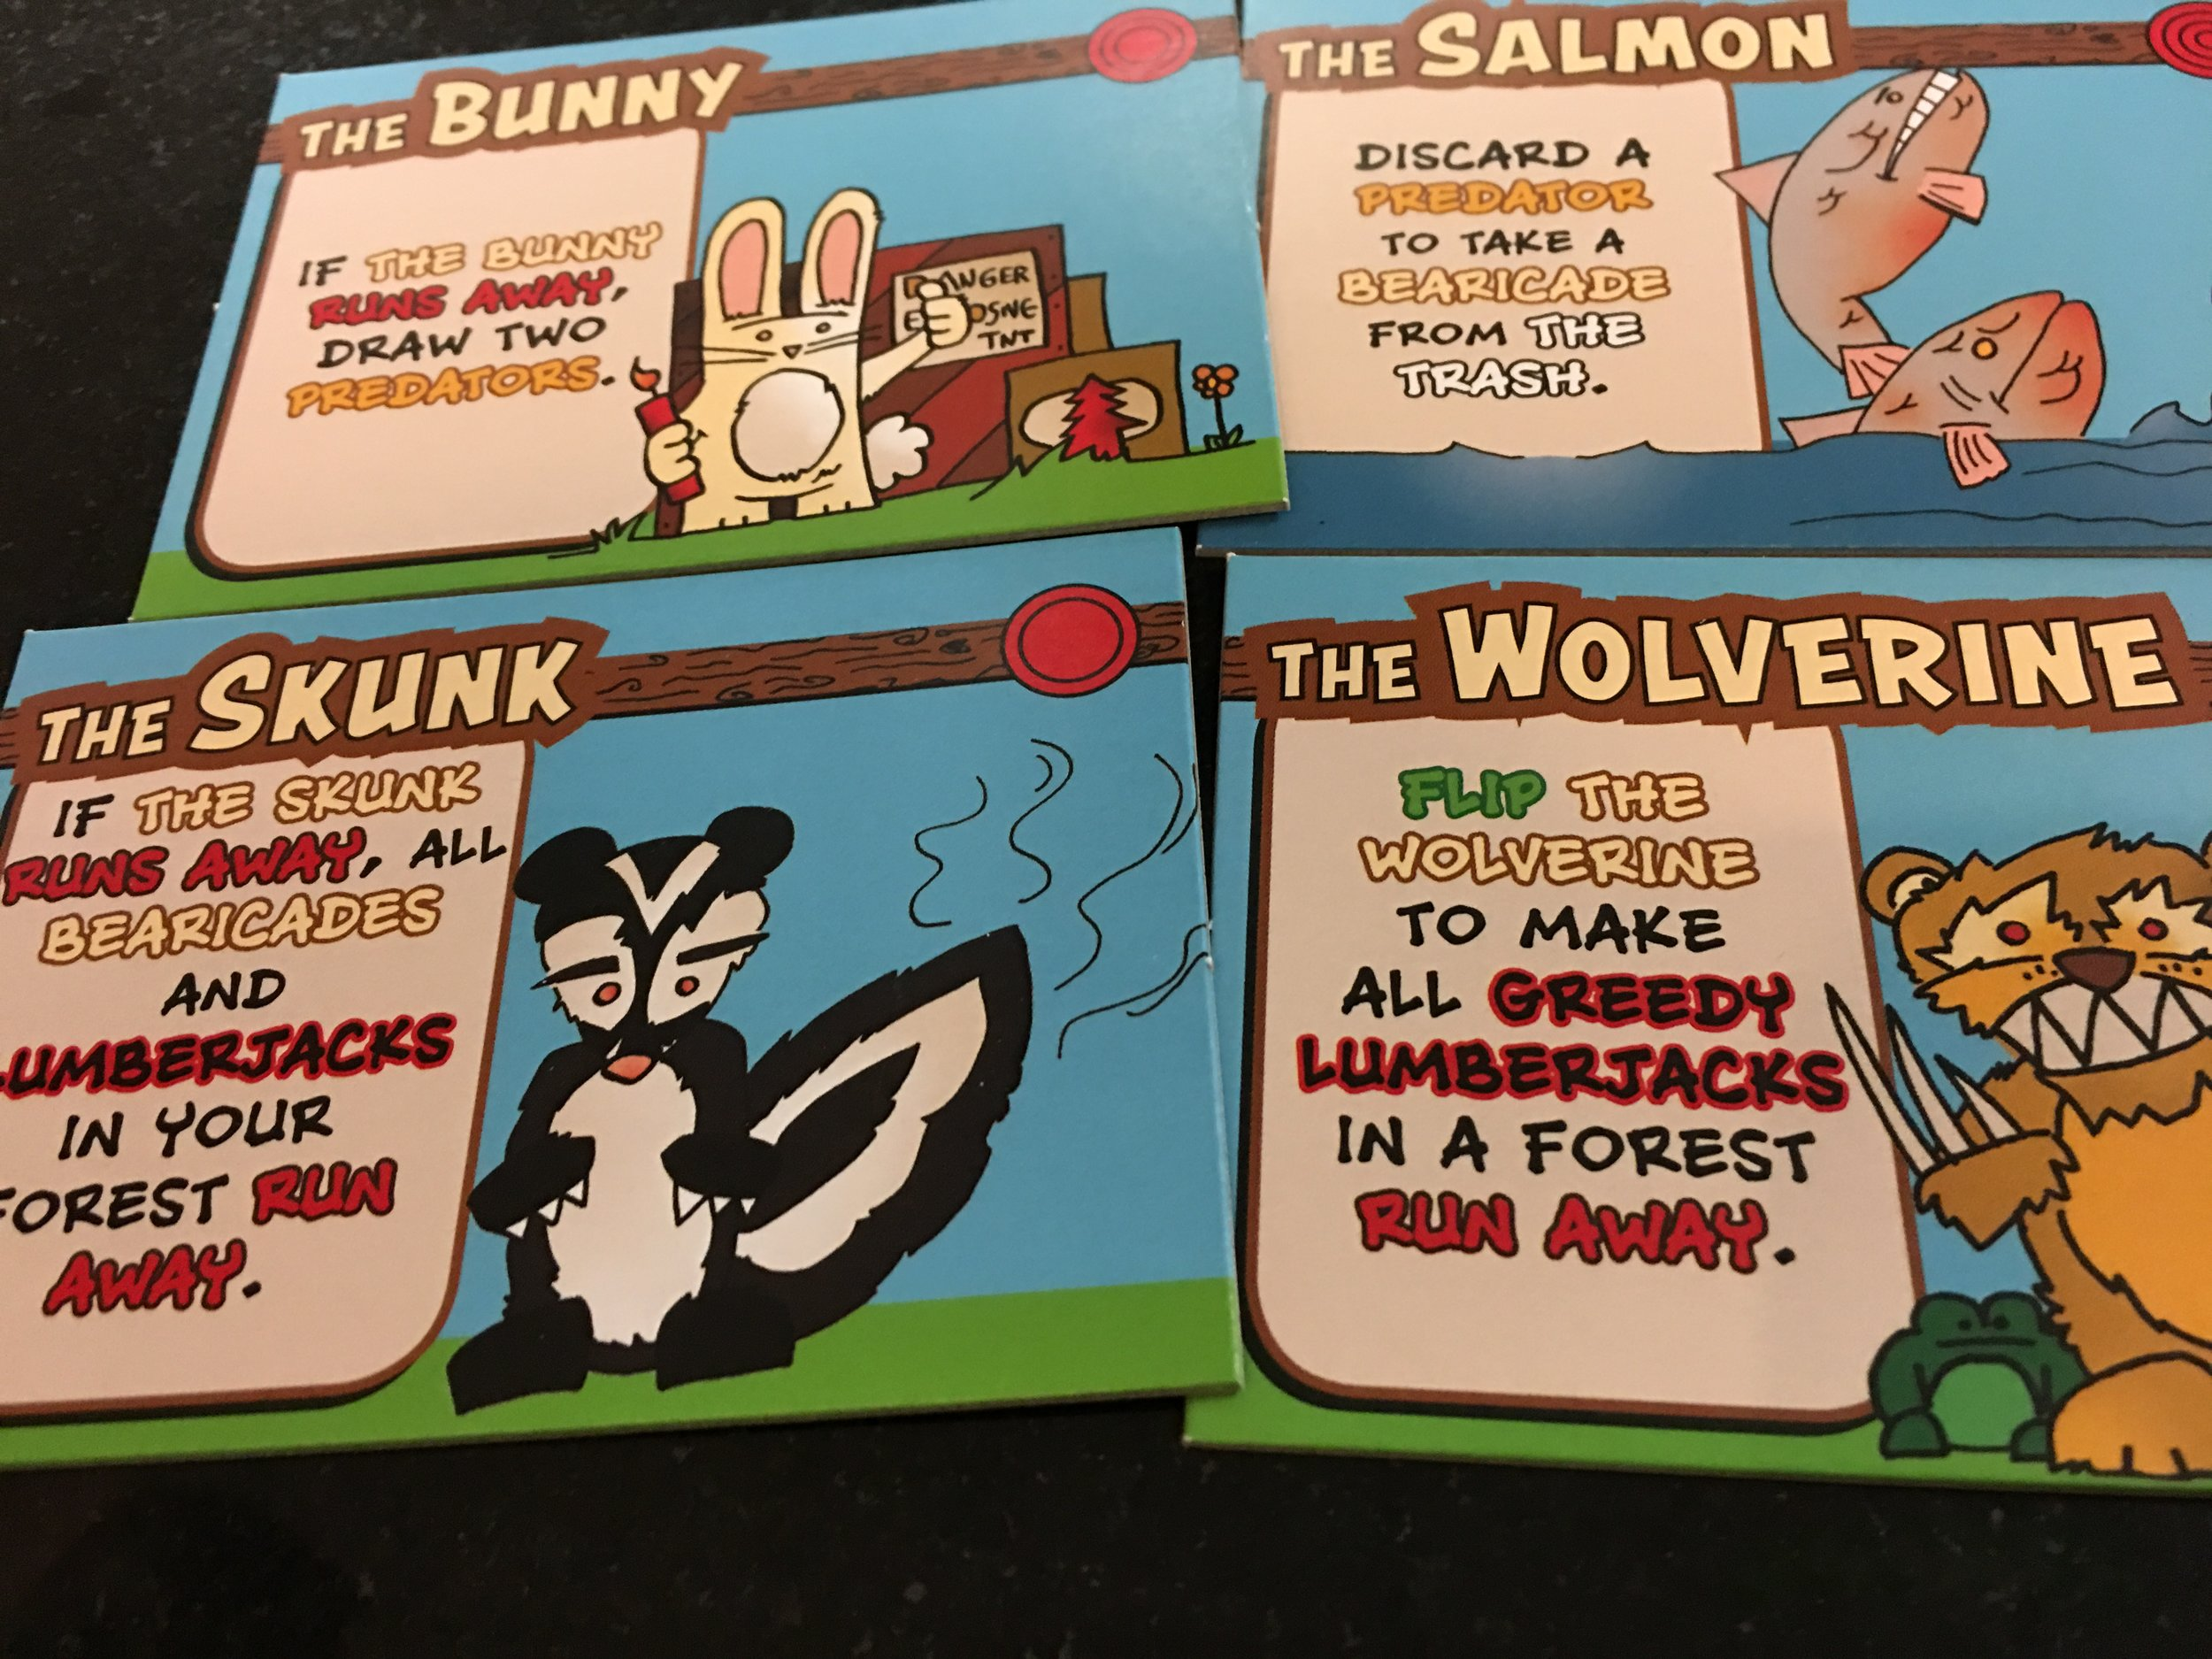 Not quite sure how Salmon and Skunks work together, but I'll go with it.